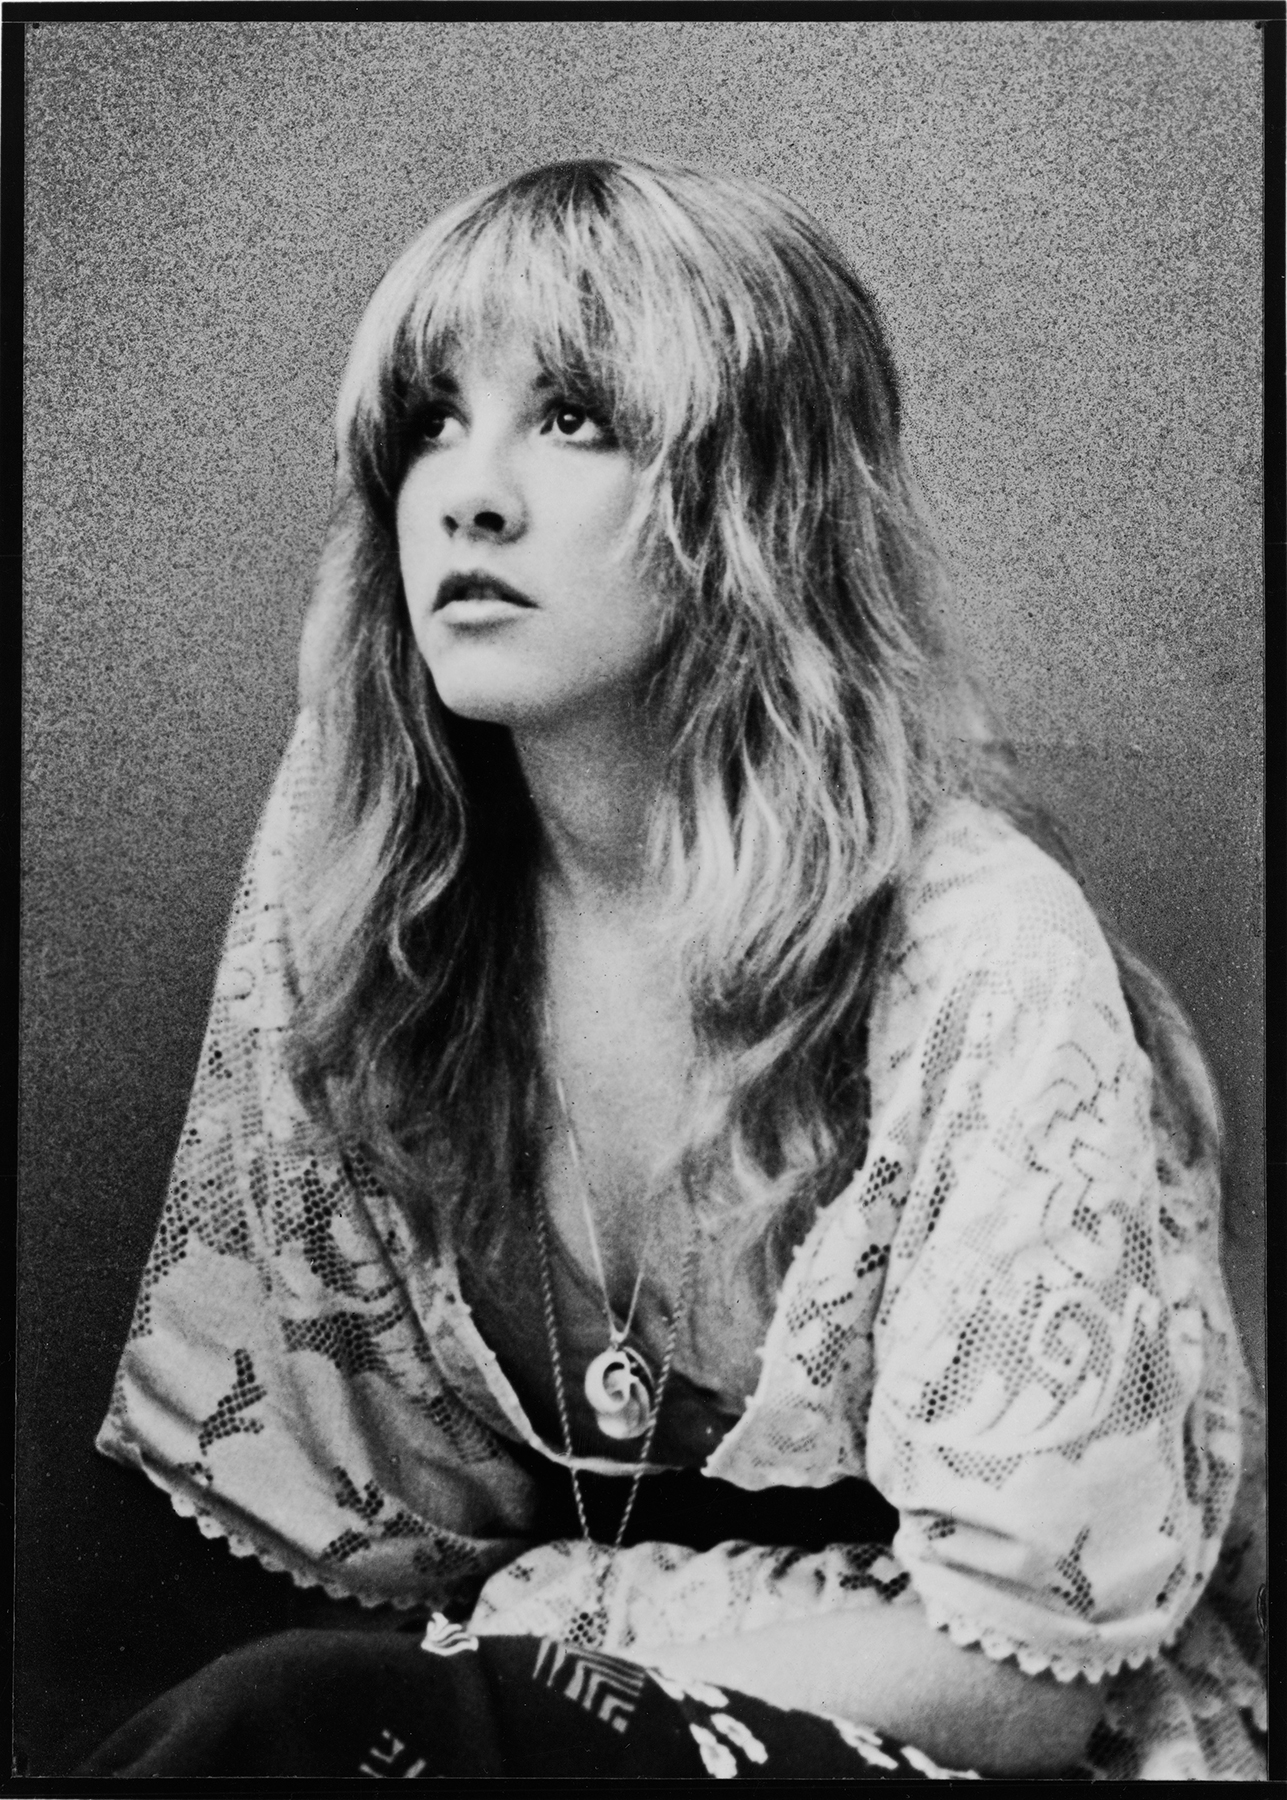 Promotional portrait of American pop and rock singer Stevie Nicks (of the group Fleetwood Mac) as she sits and looks upward, dressed in a lace shawl, late 1970s. (Photo by Hulton Archive/Getty Images)